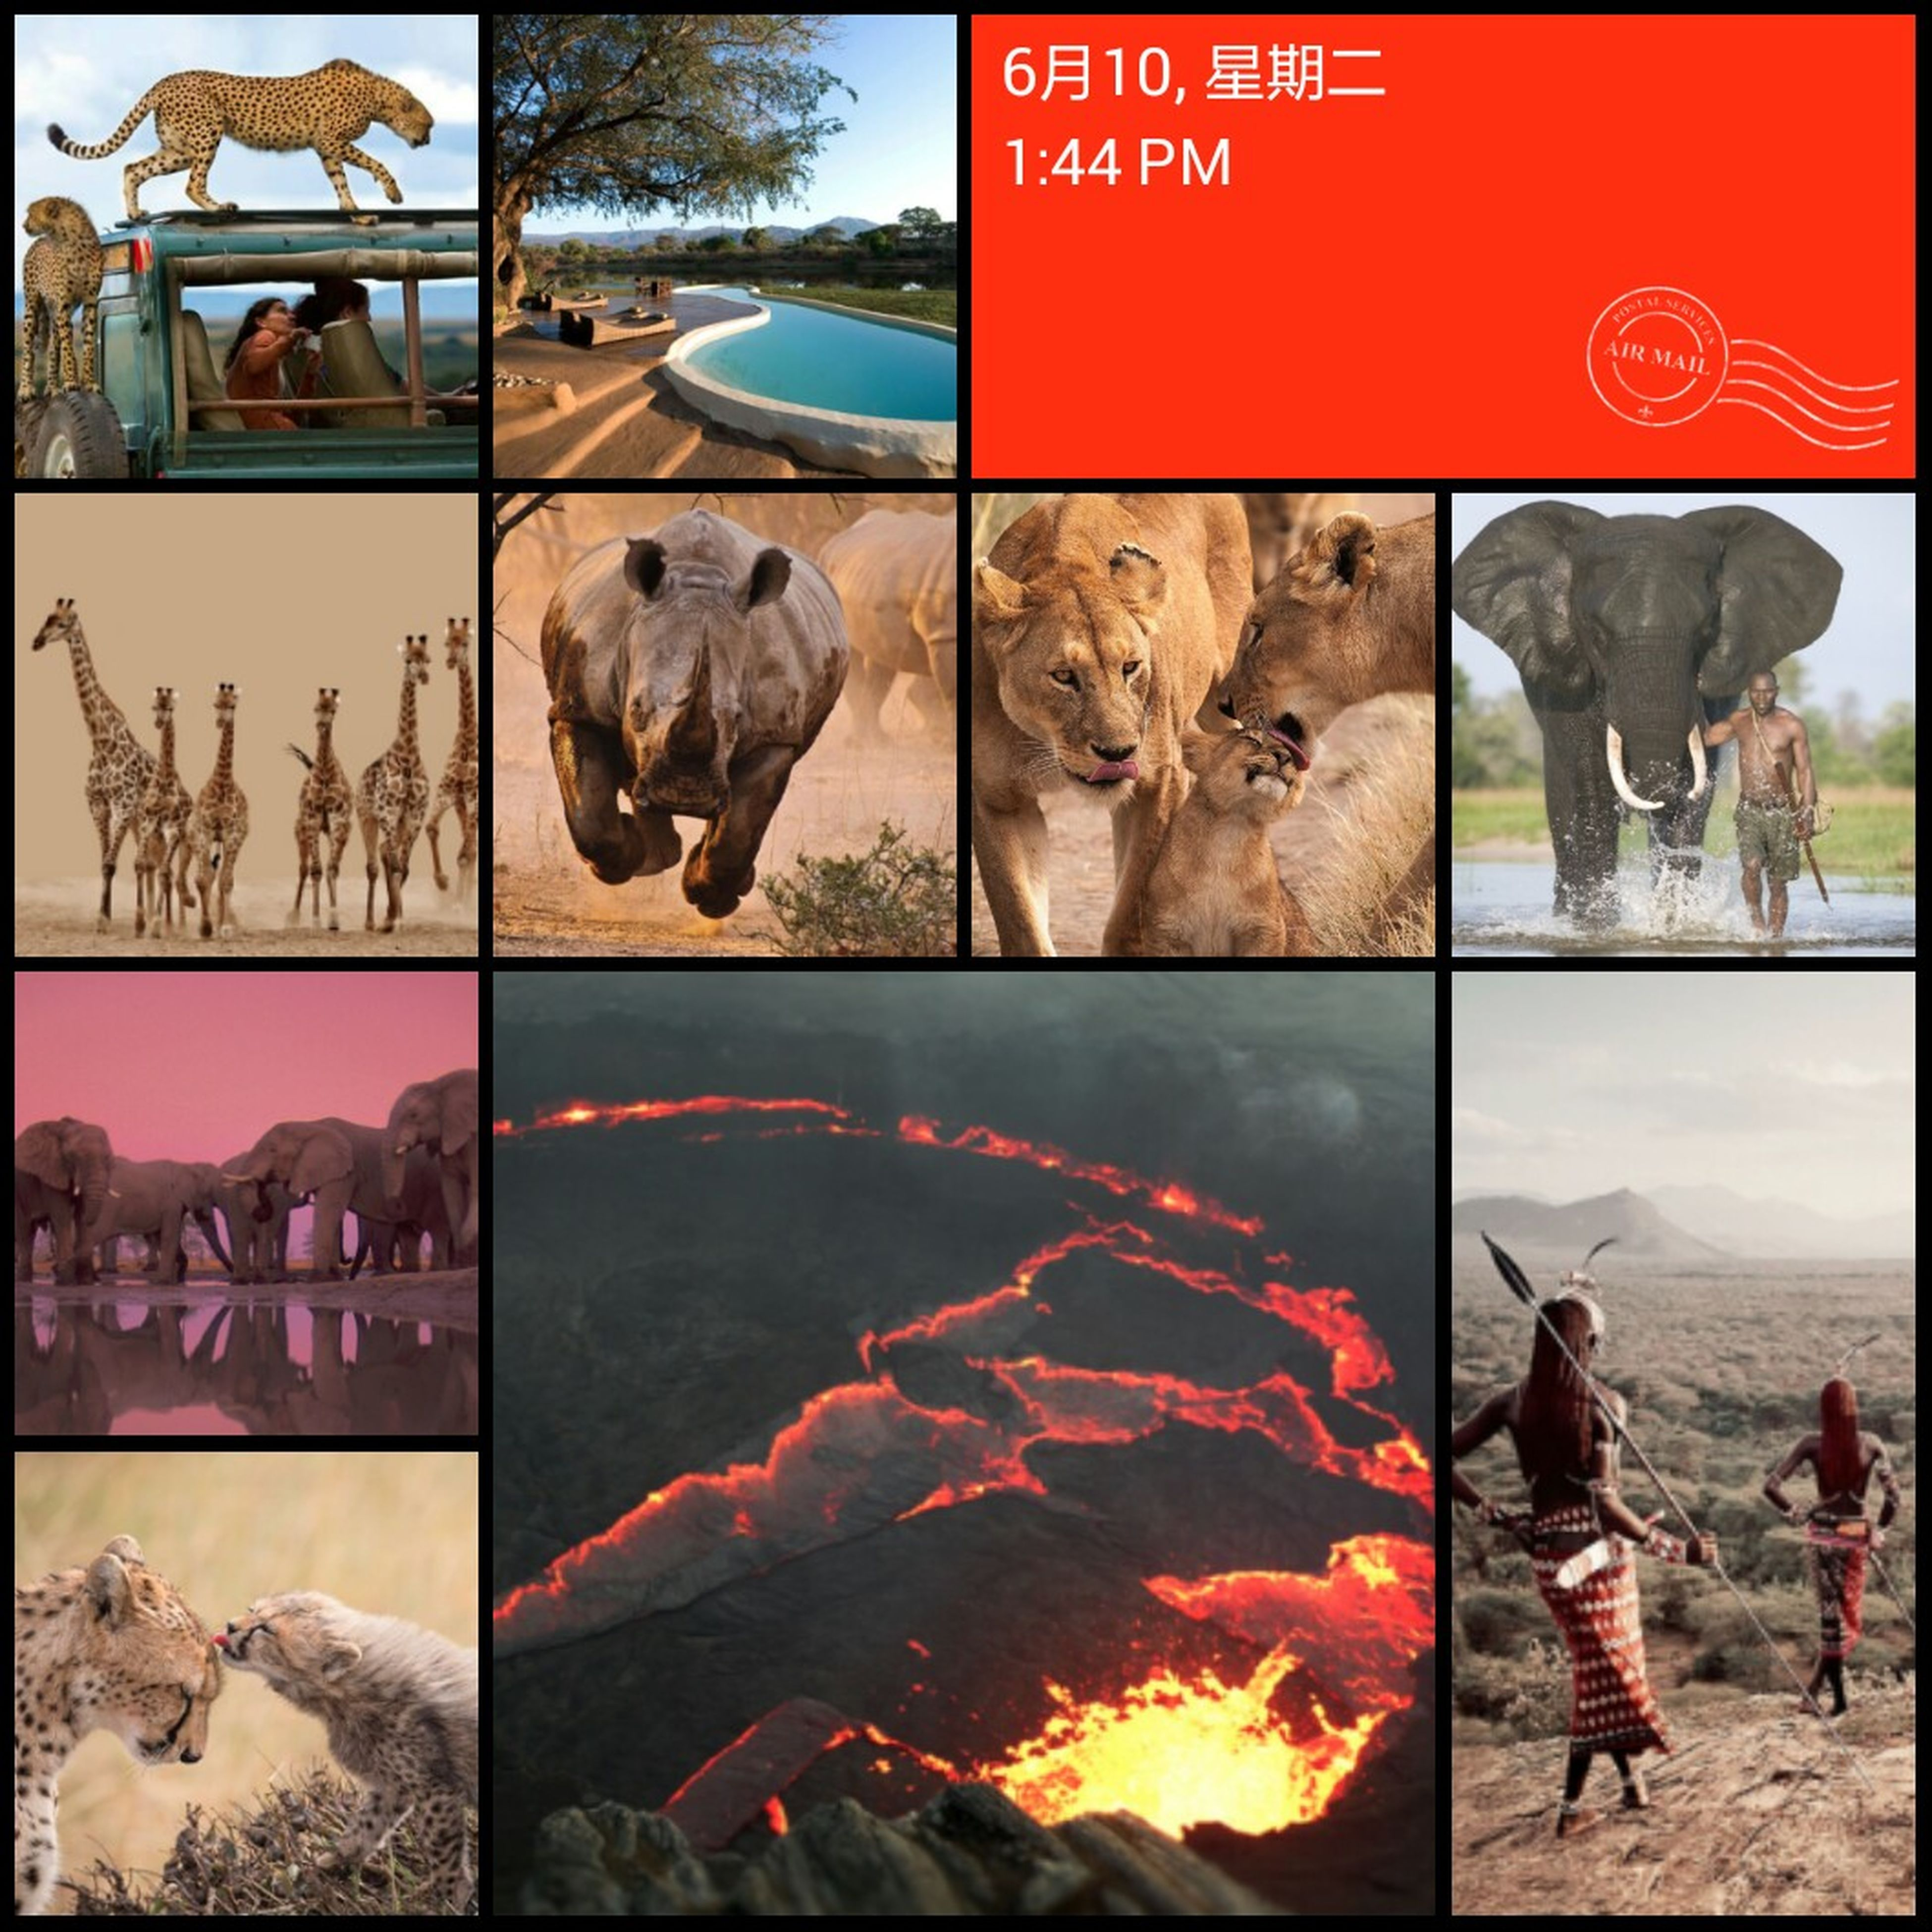 Wish i can be there right now? Africa Wild Animals